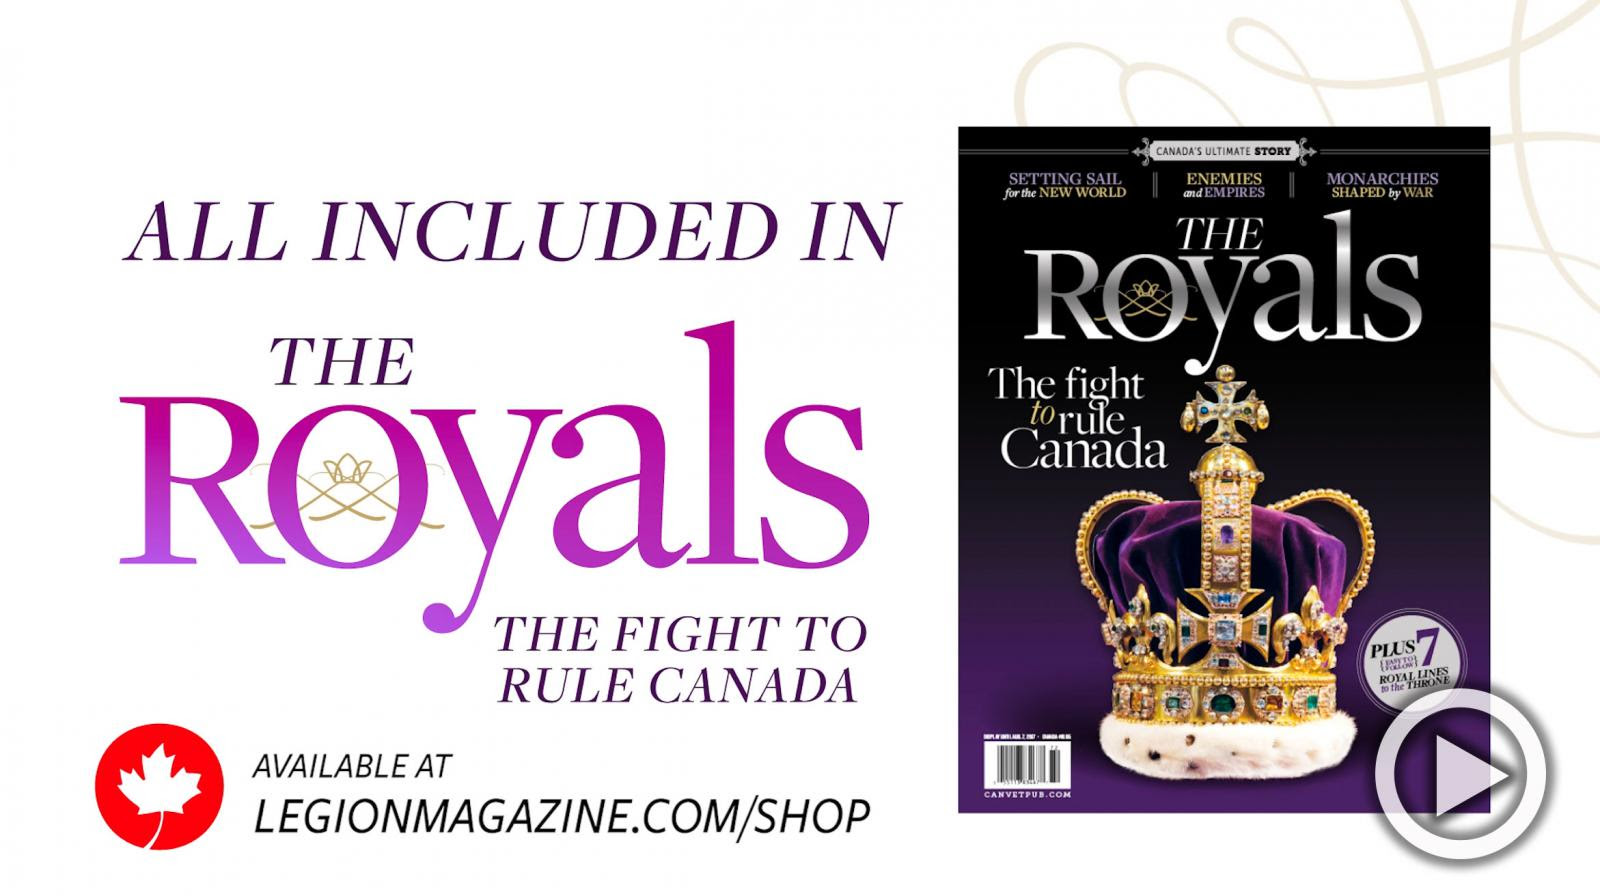 The Royals: The fight to rule Canada